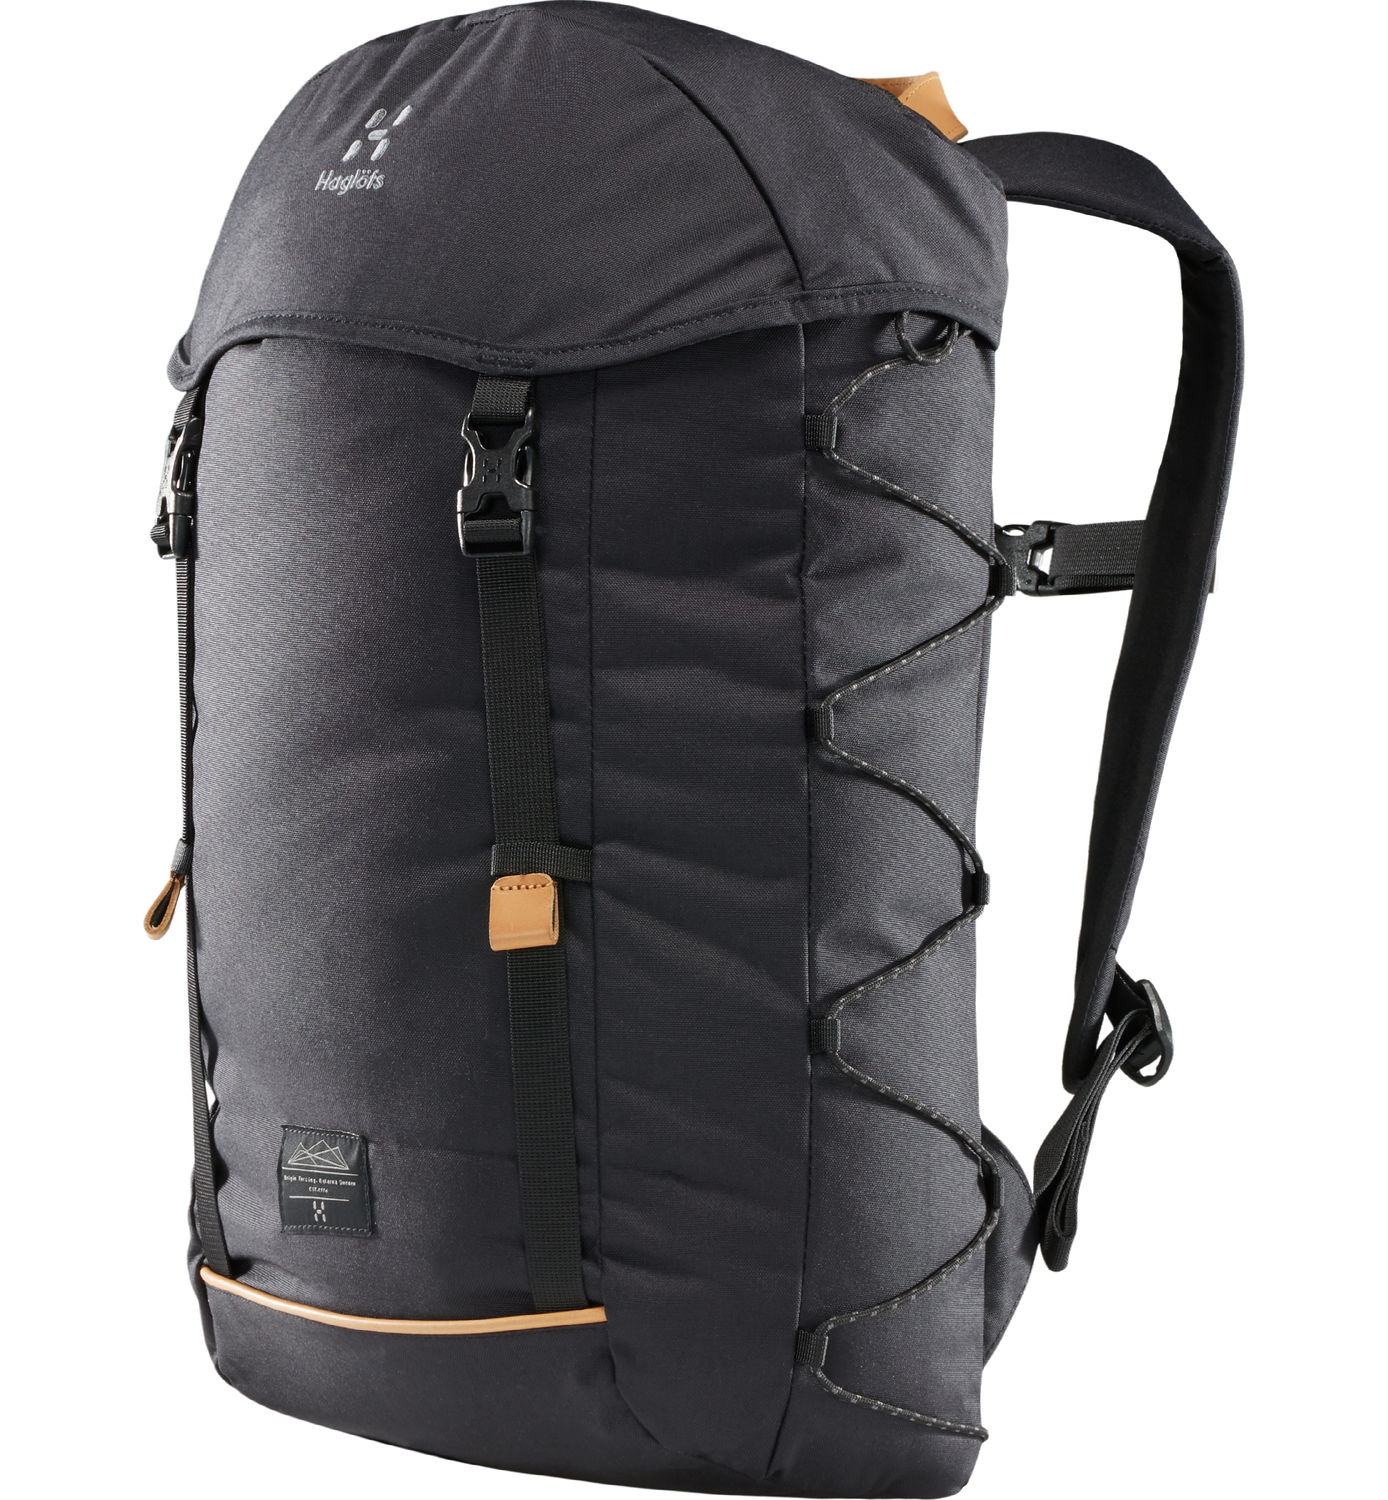 Рюкзак Haglofs ShoSho Medium True Black - Фото 1 большая